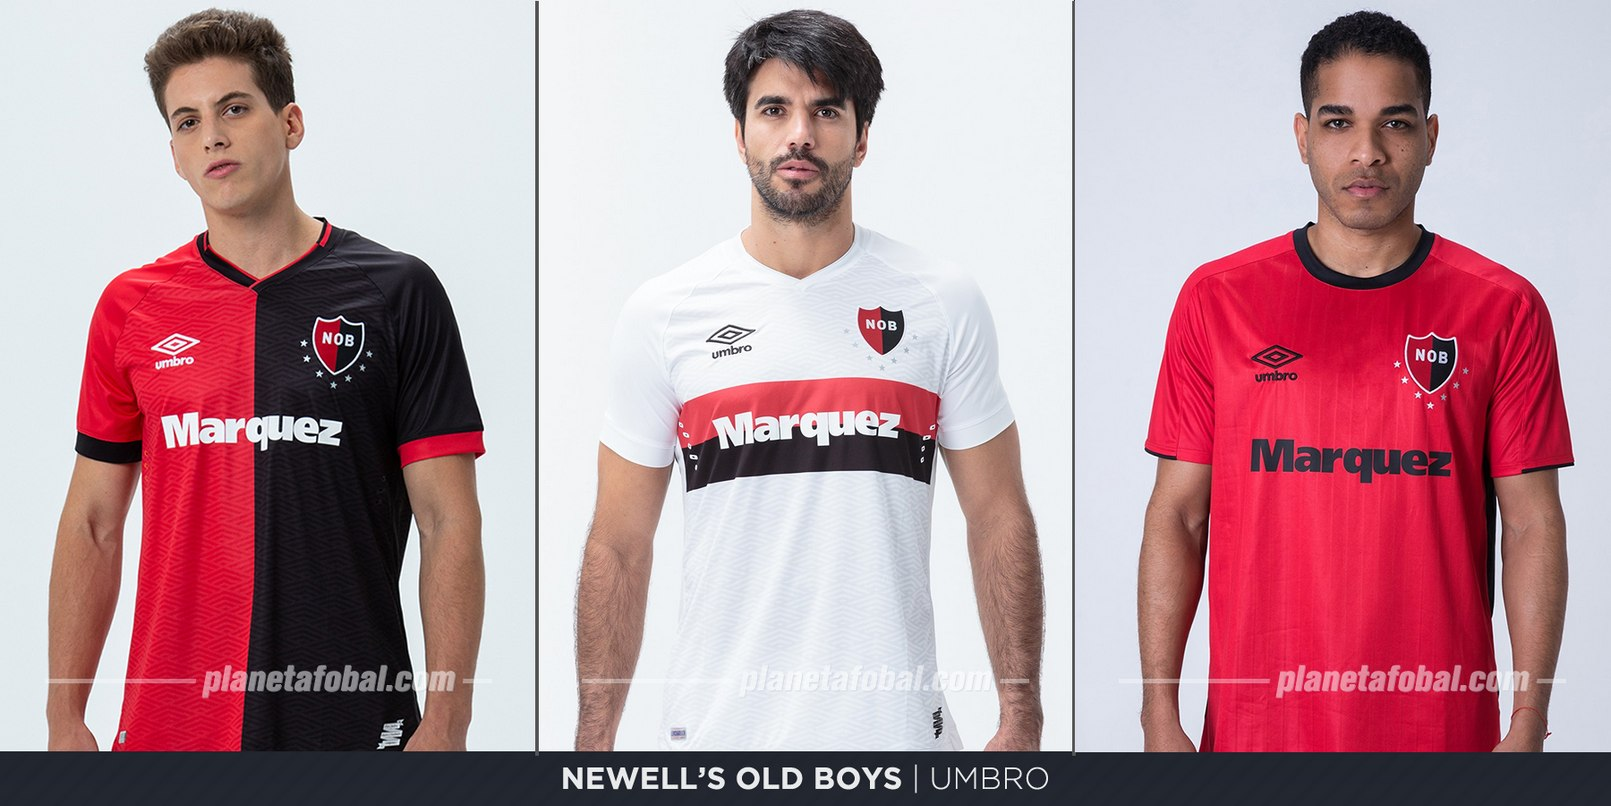 Newell's (Umbro) | Camisetas de la Superliga 2019